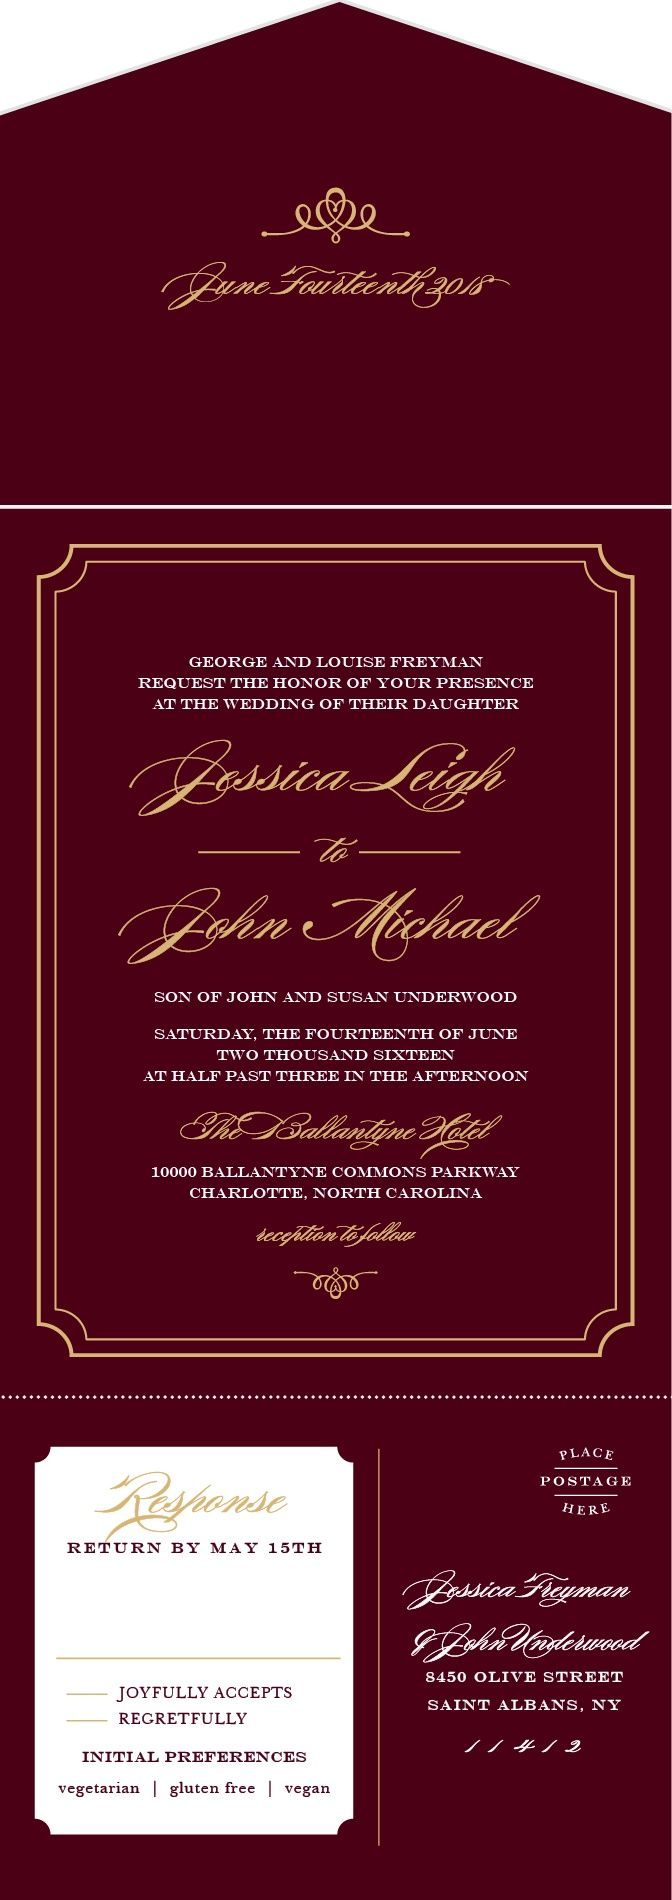 Personalized Invitations & Announcements Designs, Wedding